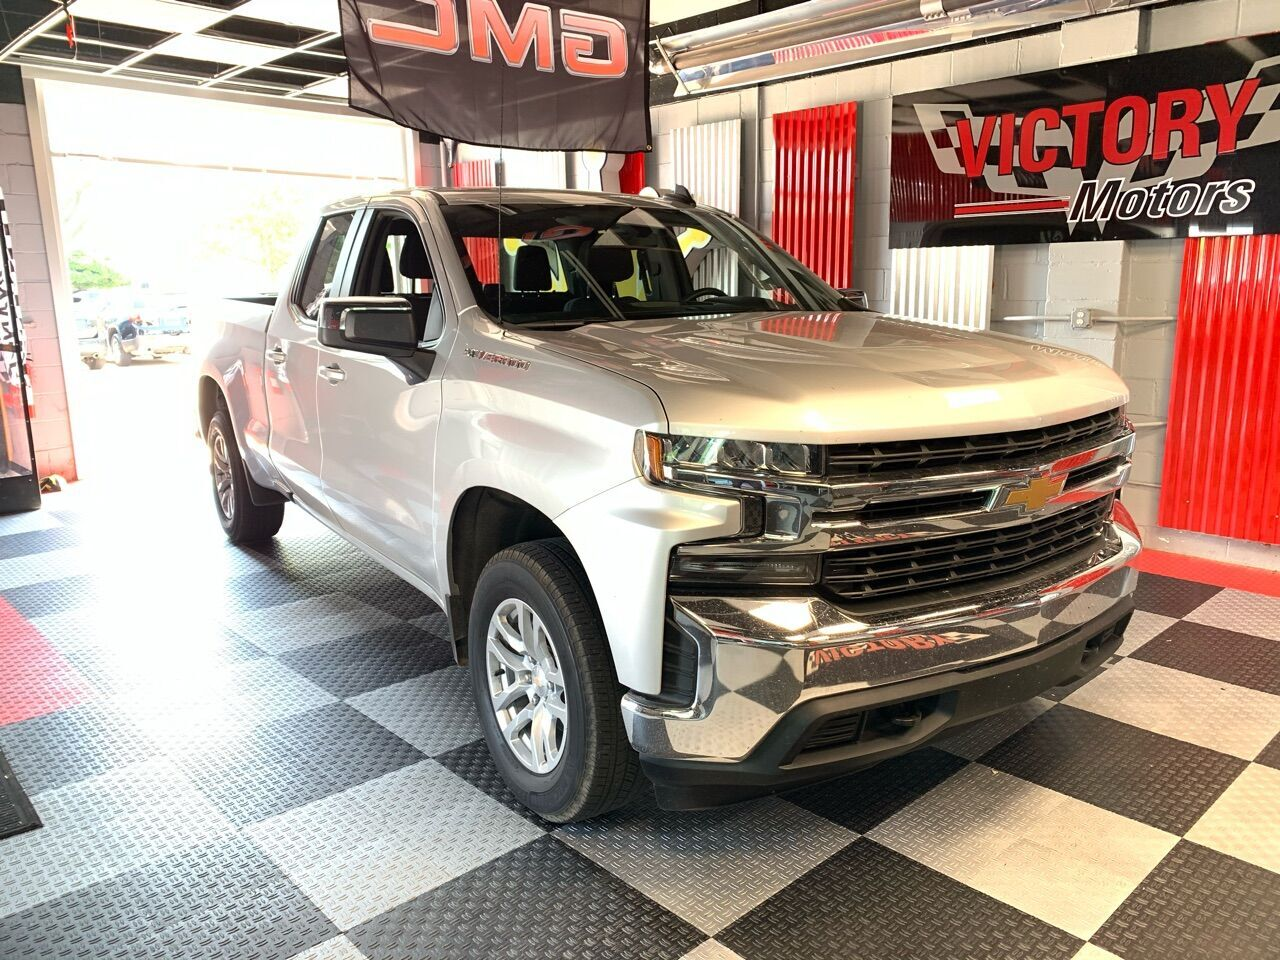 2020 Chevrolet Silverado 1500 LT 4x4 4dr Double Cab 6.6 ft. SB Royal Oak MI